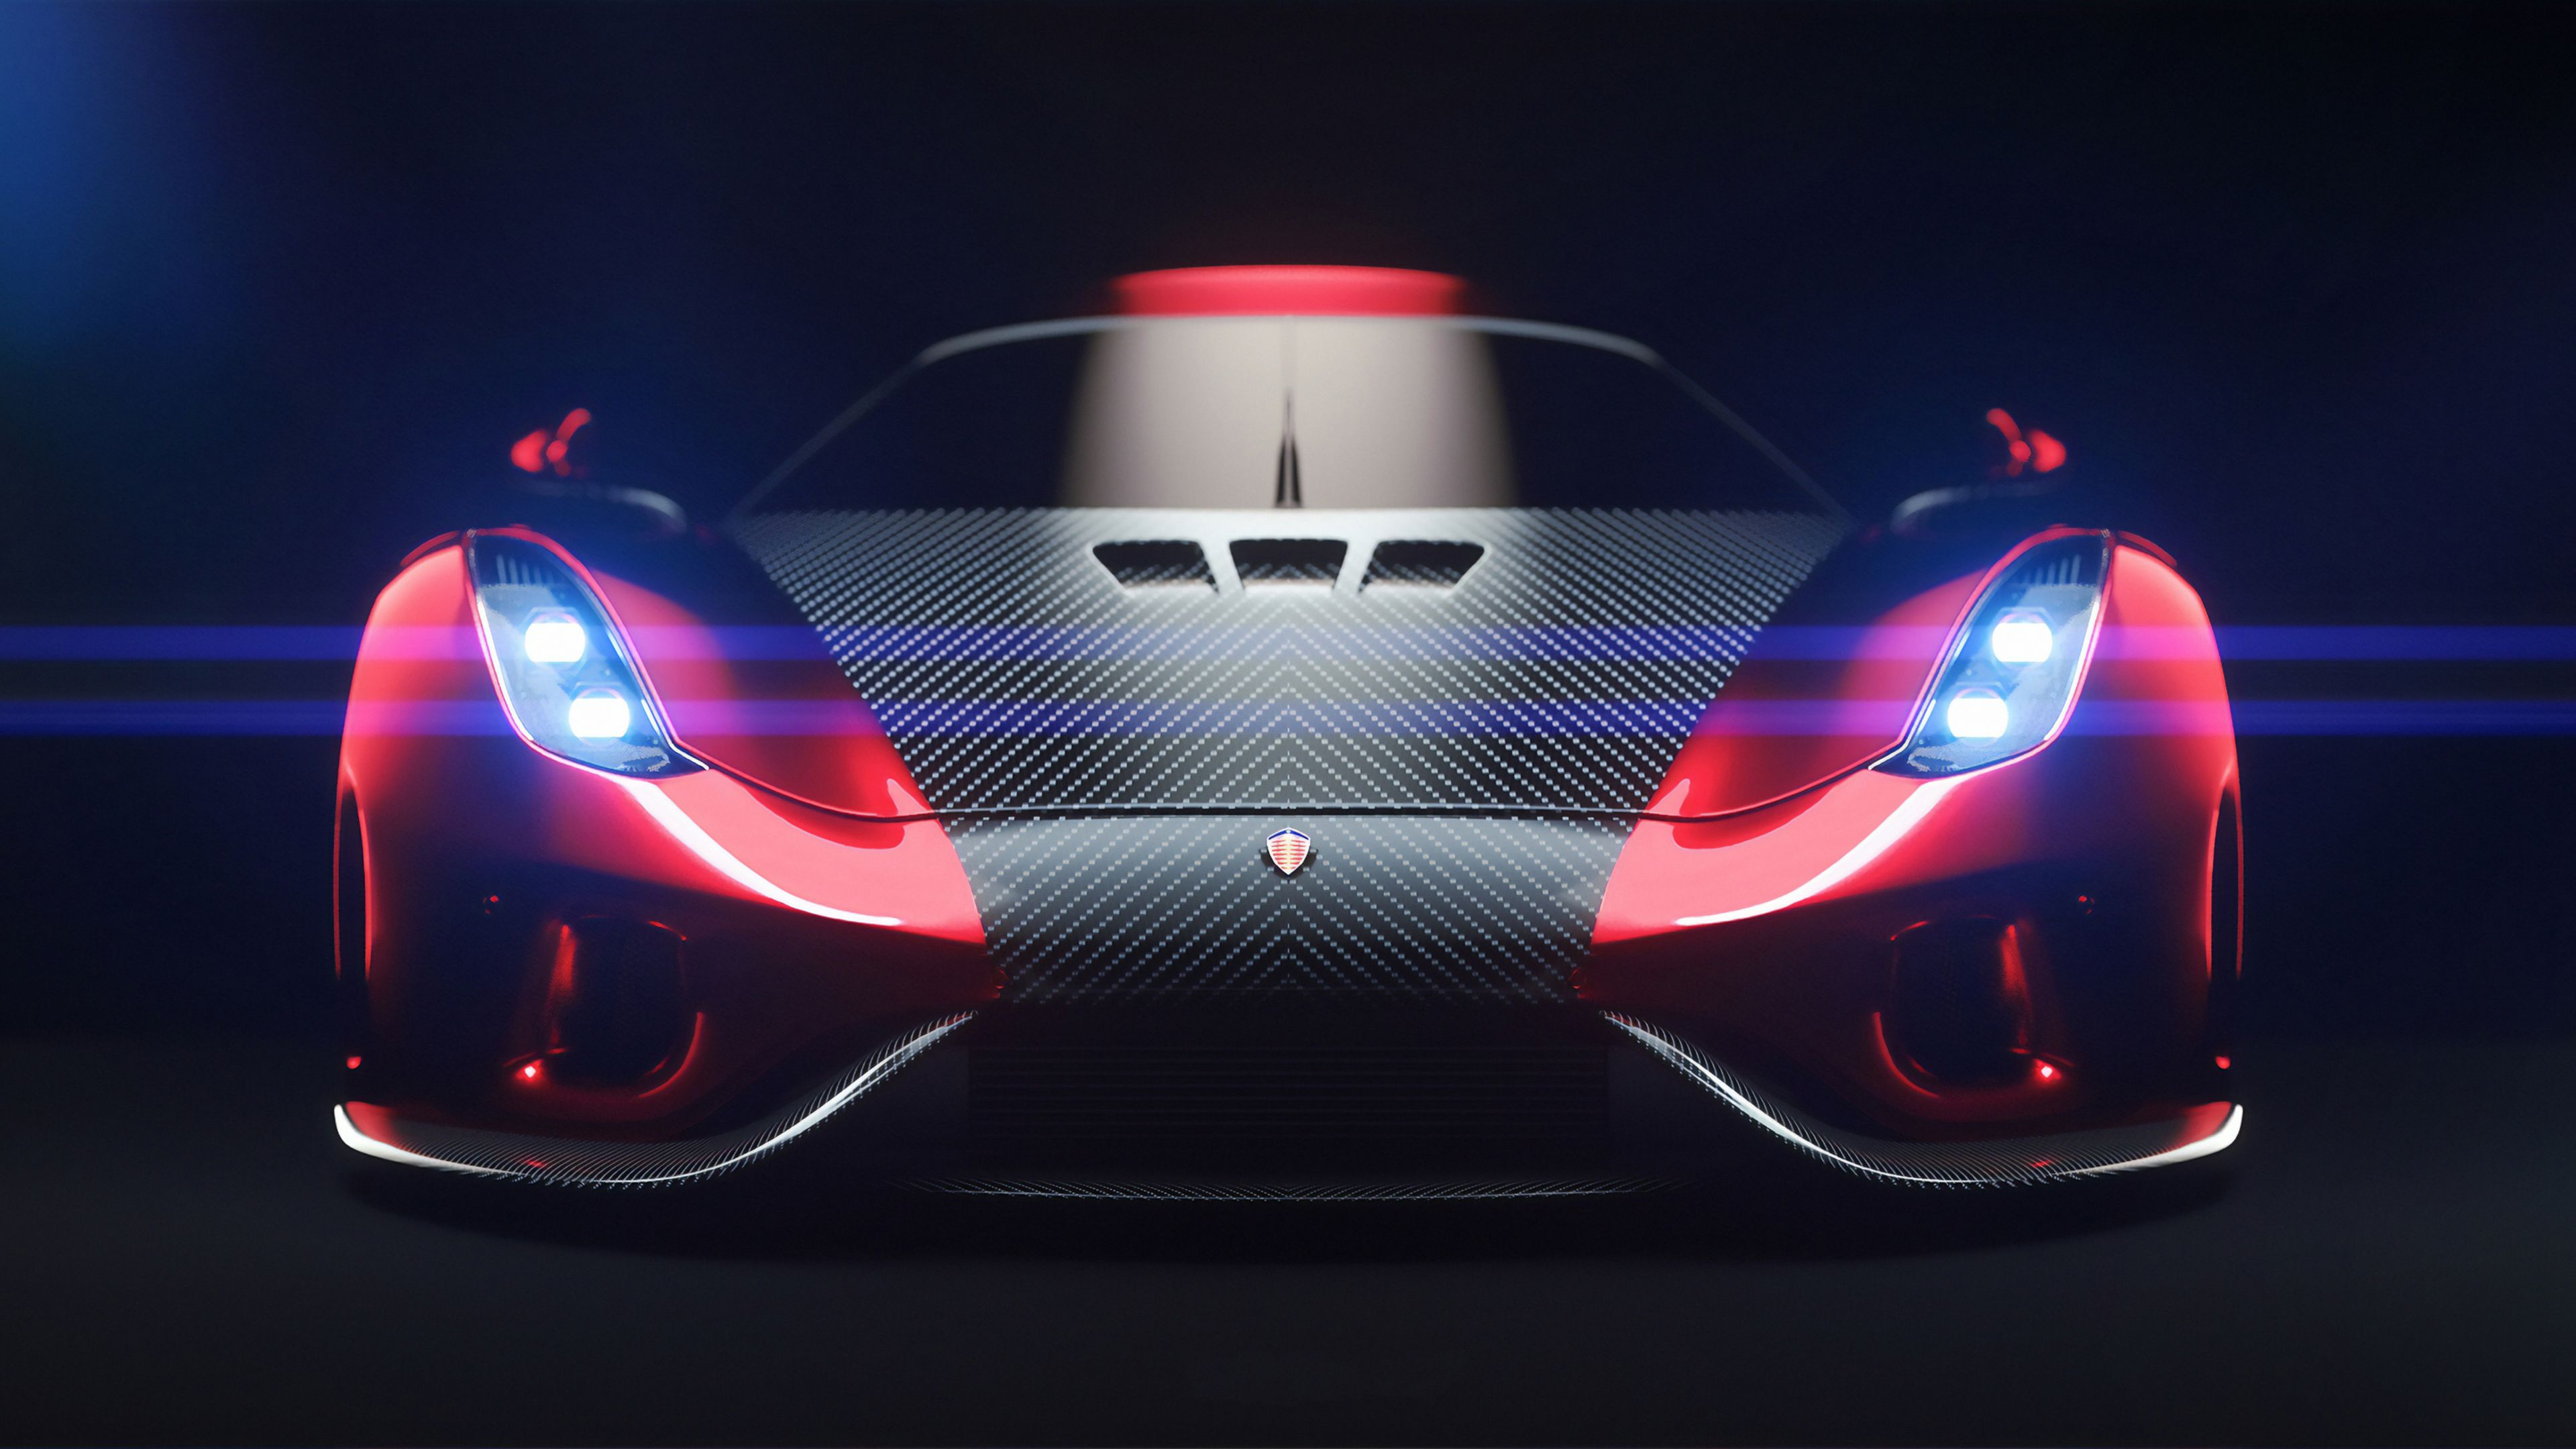 Feel free to share with your friends and family. Car Wallpaper For Computer 4k